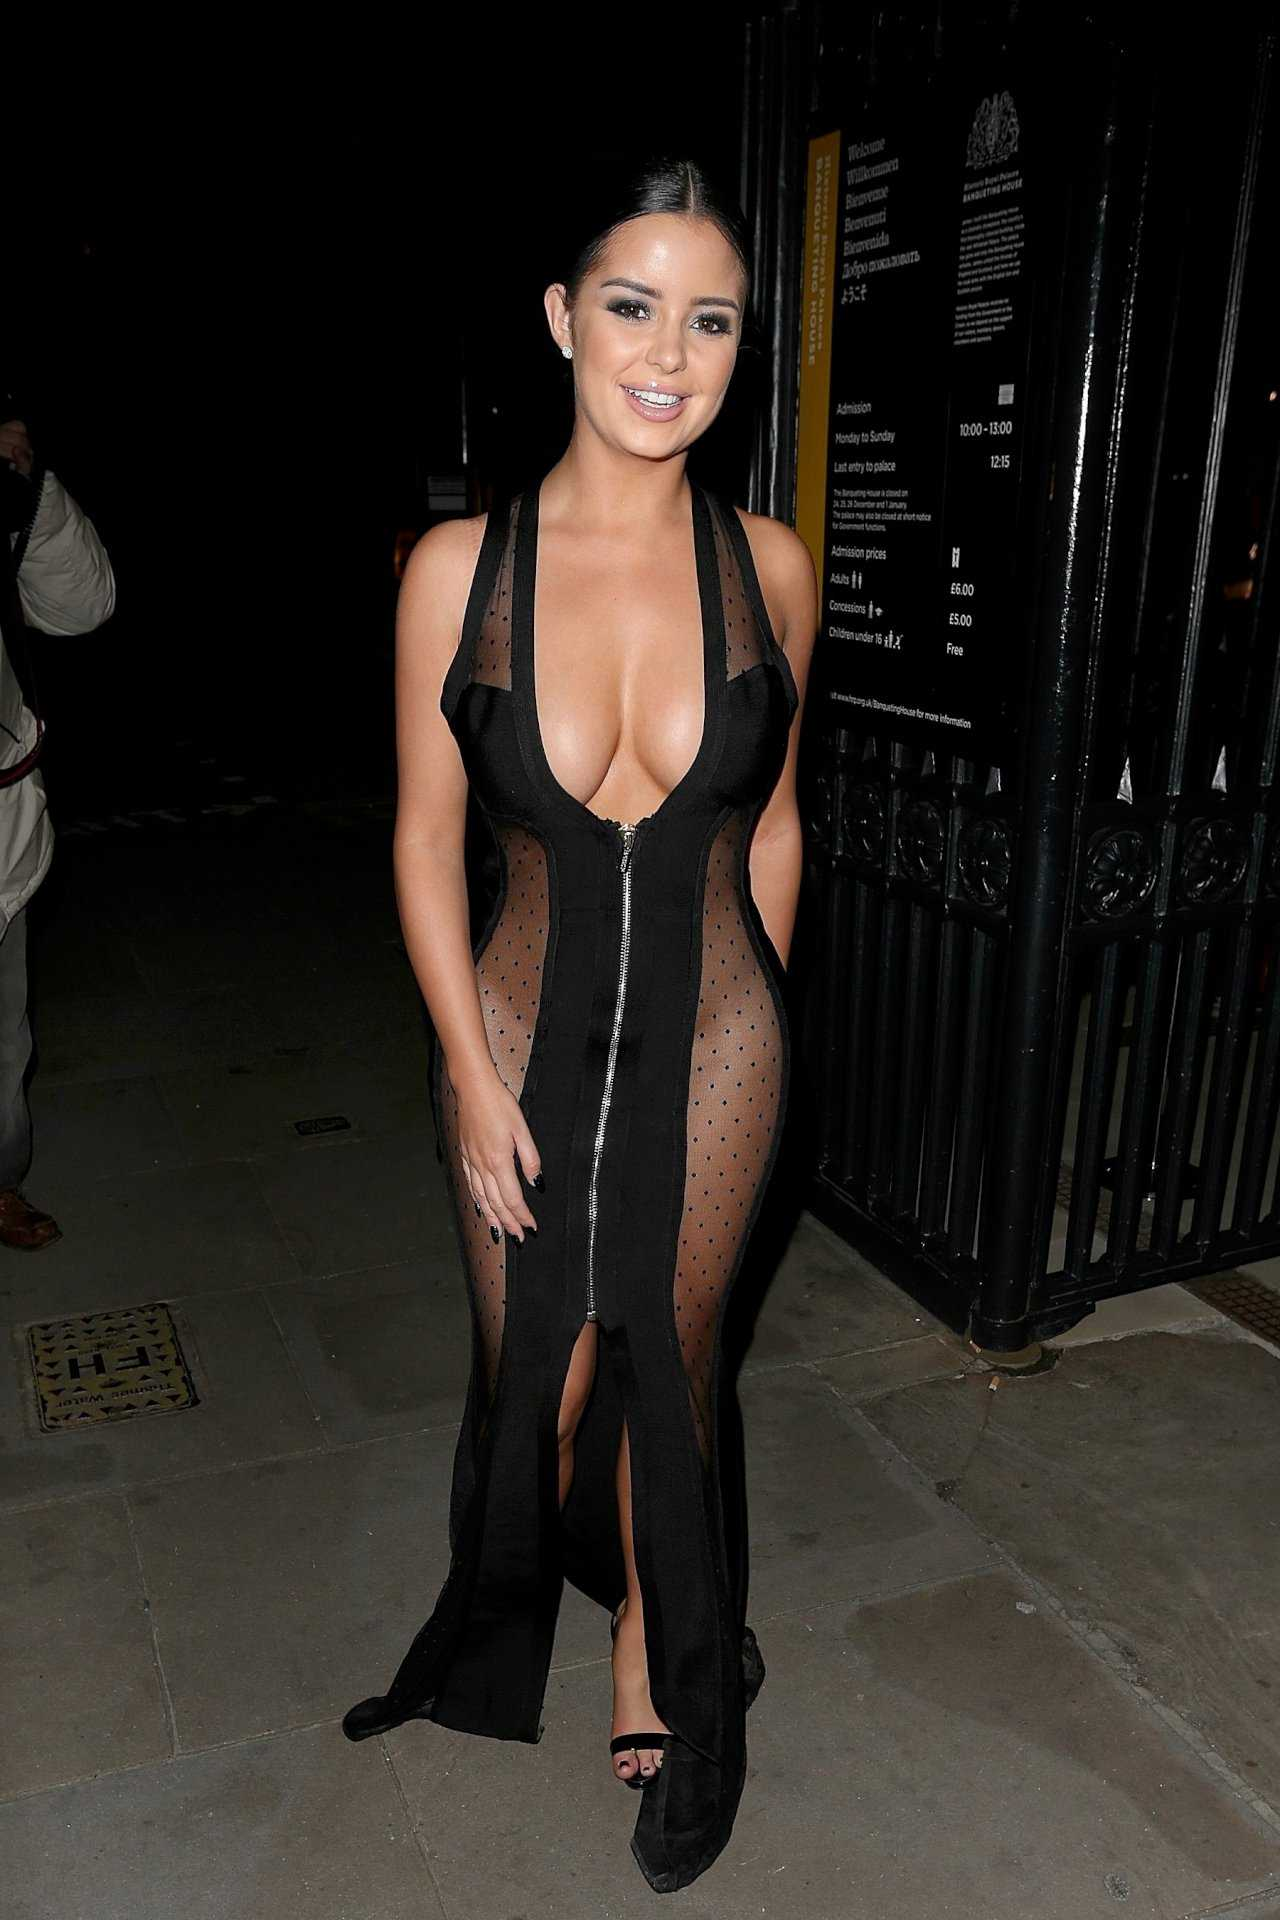 demi-rose-e-seu-vestido-sexy-no-beauty-awards-em-londres02